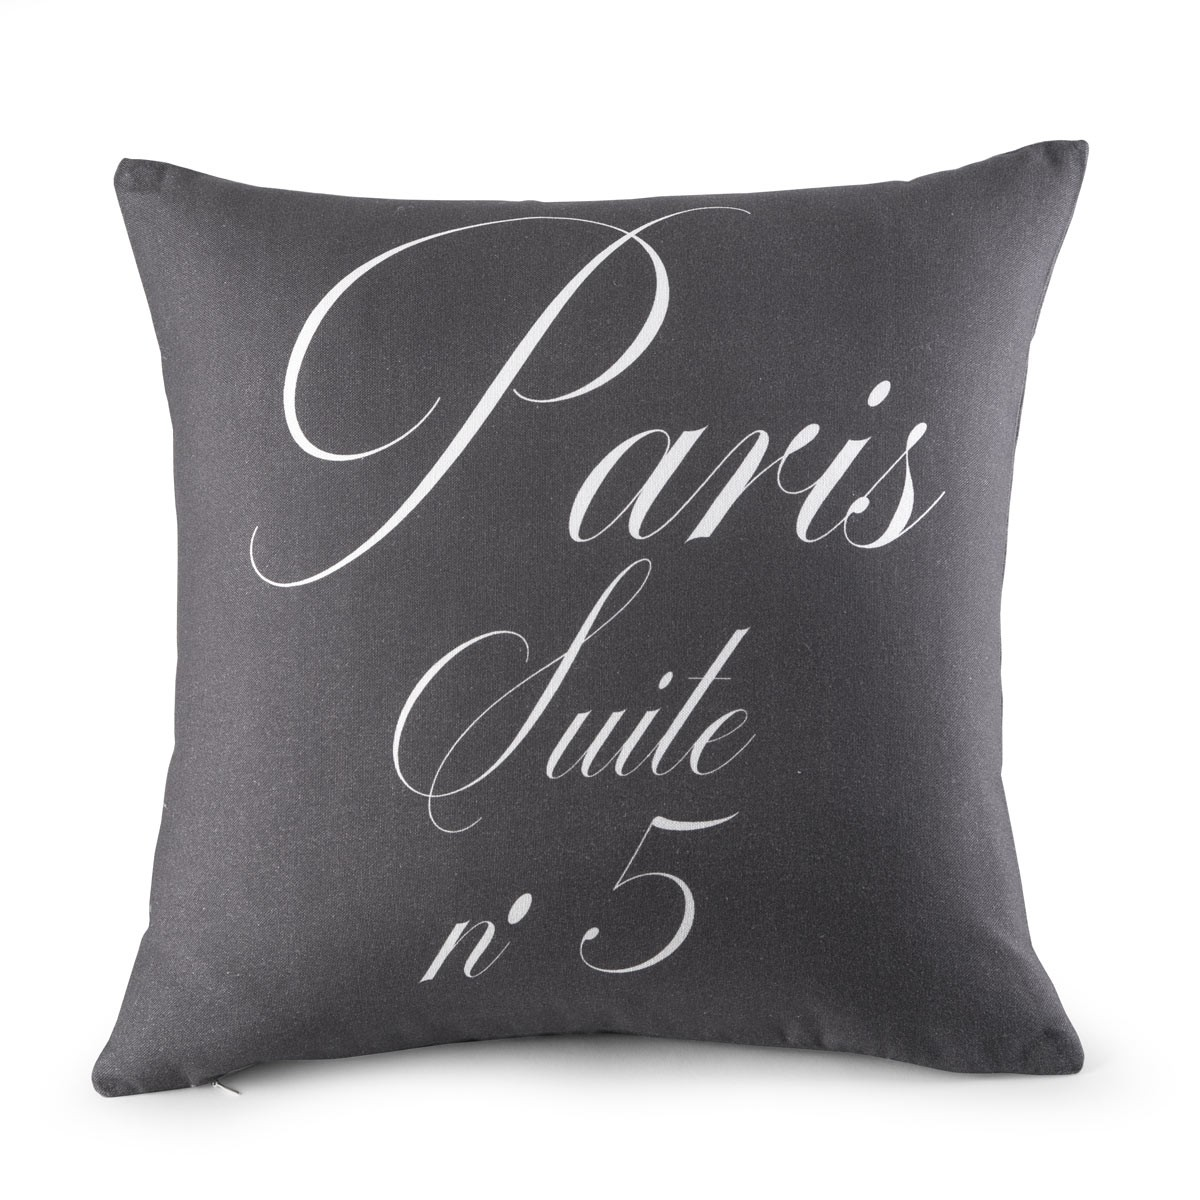 housse coussin paris gris cretonne linge de maison de qualit tradition des vosges. Black Bedroom Furniture Sets. Home Design Ideas